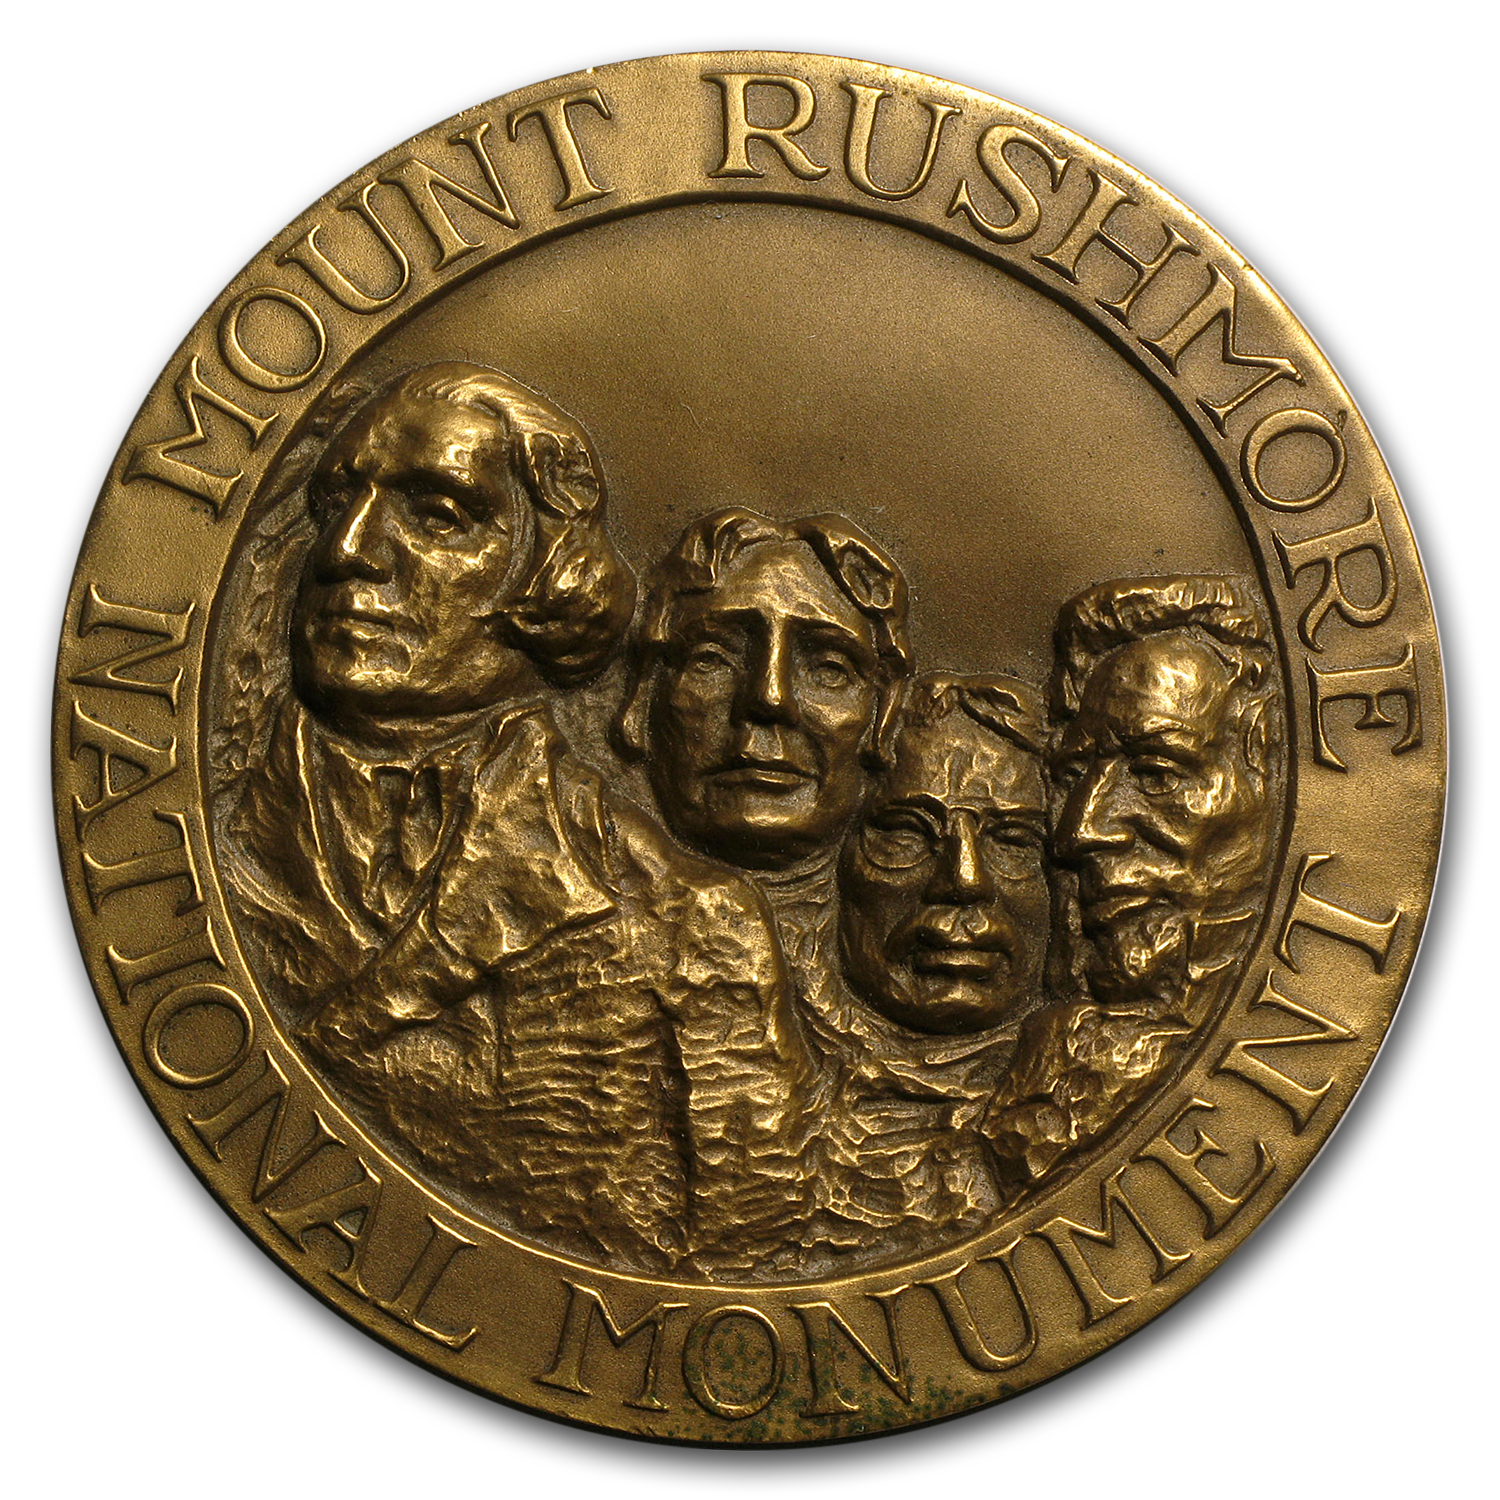 Mount Rushmore National Monument Medal